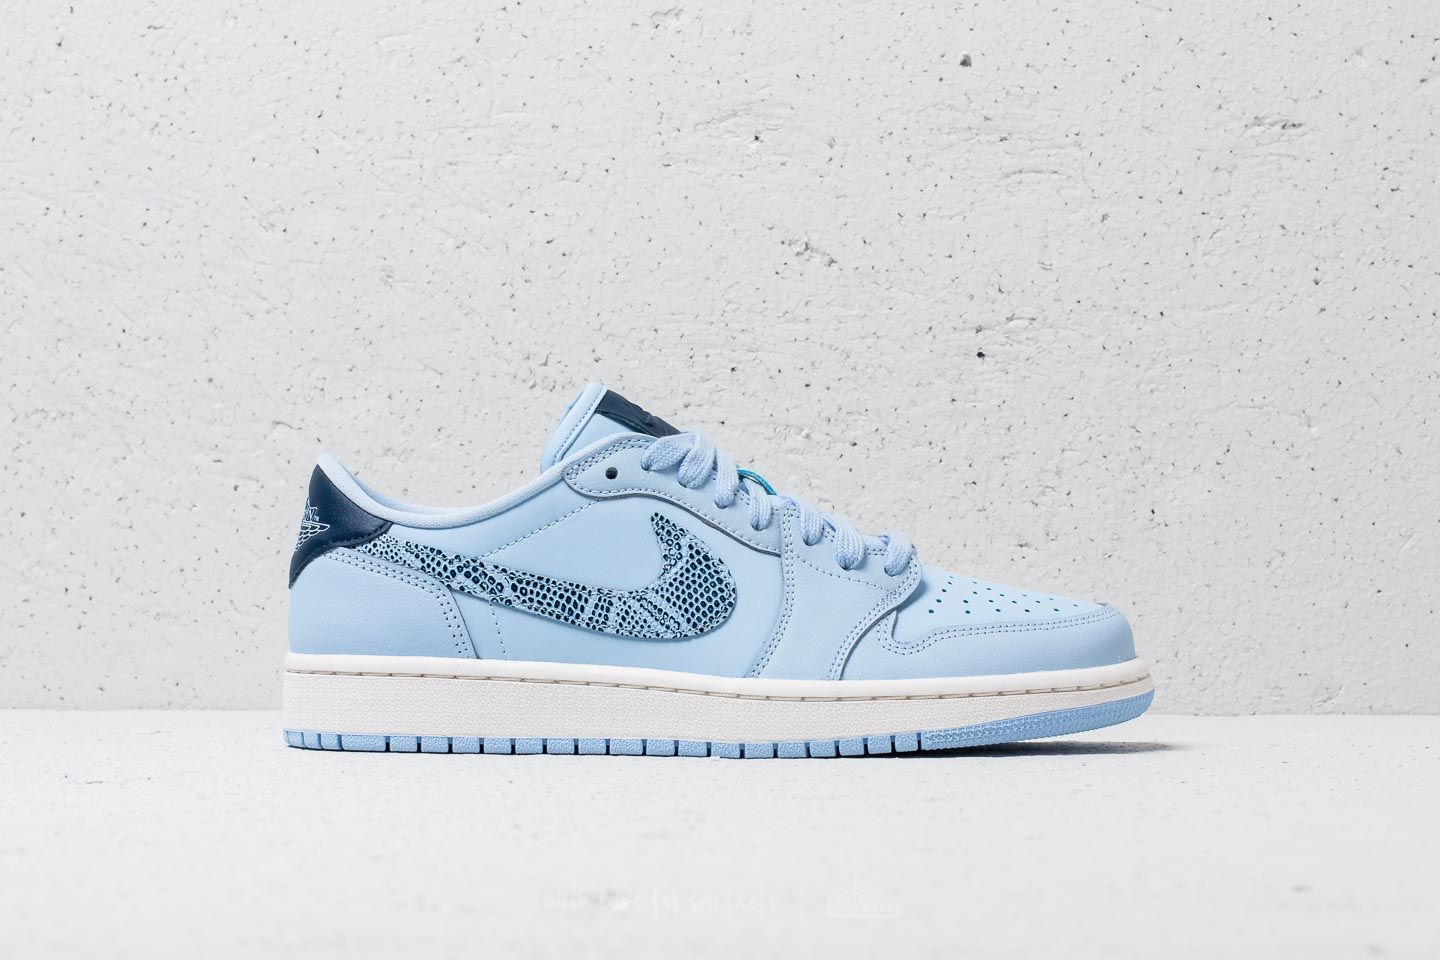 pretty nice 5c056 bbac0 Air Jordan 1 Retro Low OG WMNS Royal Tint  Navy-Phantom at a great